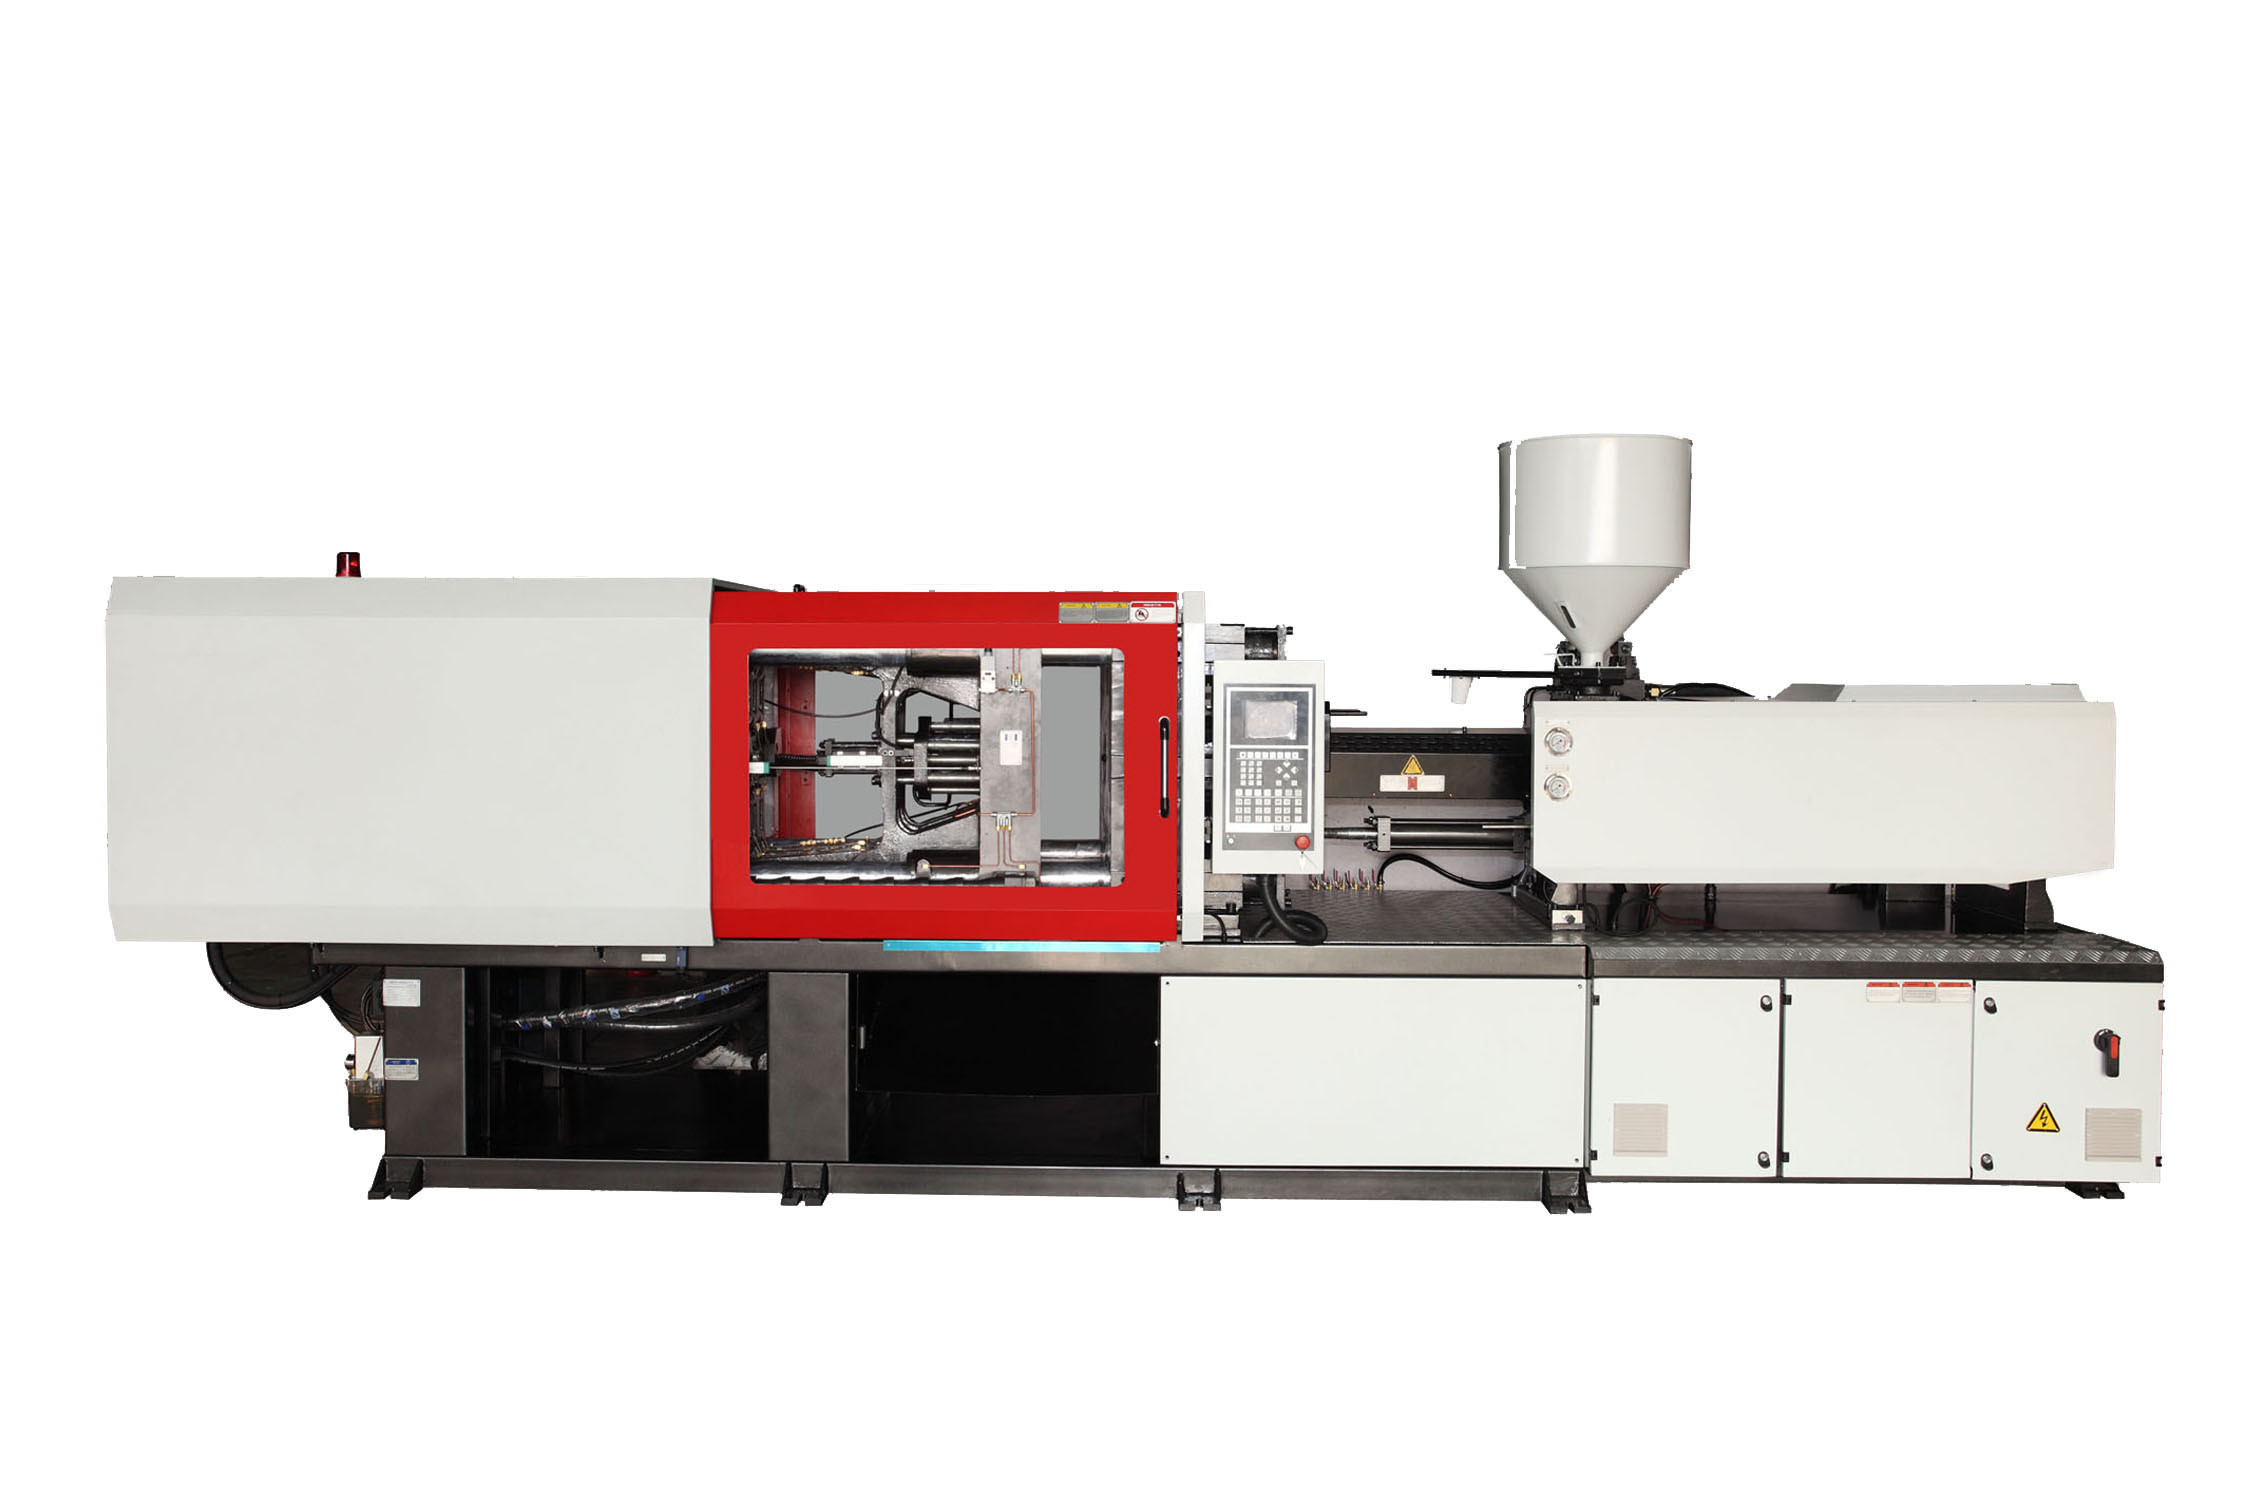 injection molding machine market in china Plastic components inc (pci) that started in a 10,000-ft2 facility in germantown, wi in 1989 with three presses runs 40 molding machines today under a 40,500-ft2 roof.